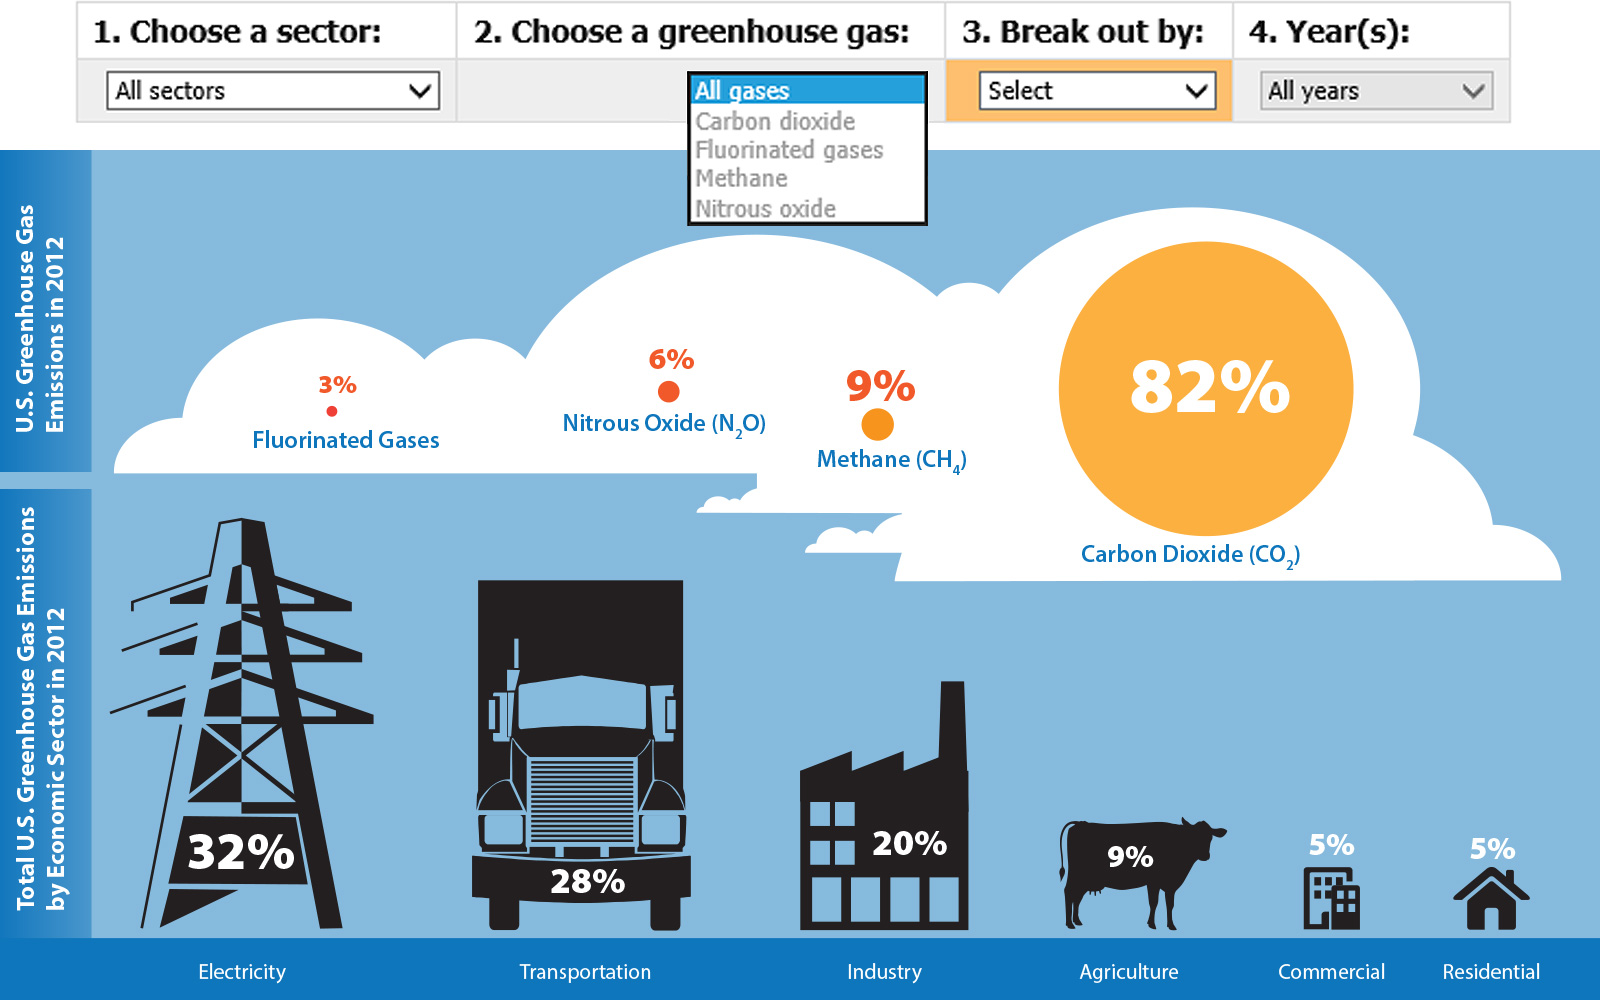 Screenshot of EPA's Greenhouse Gas Emissions Inventory Tool webpage showing four dropdown menus and images illustrating relative percentages of GHG emissions by emission type and economic sector